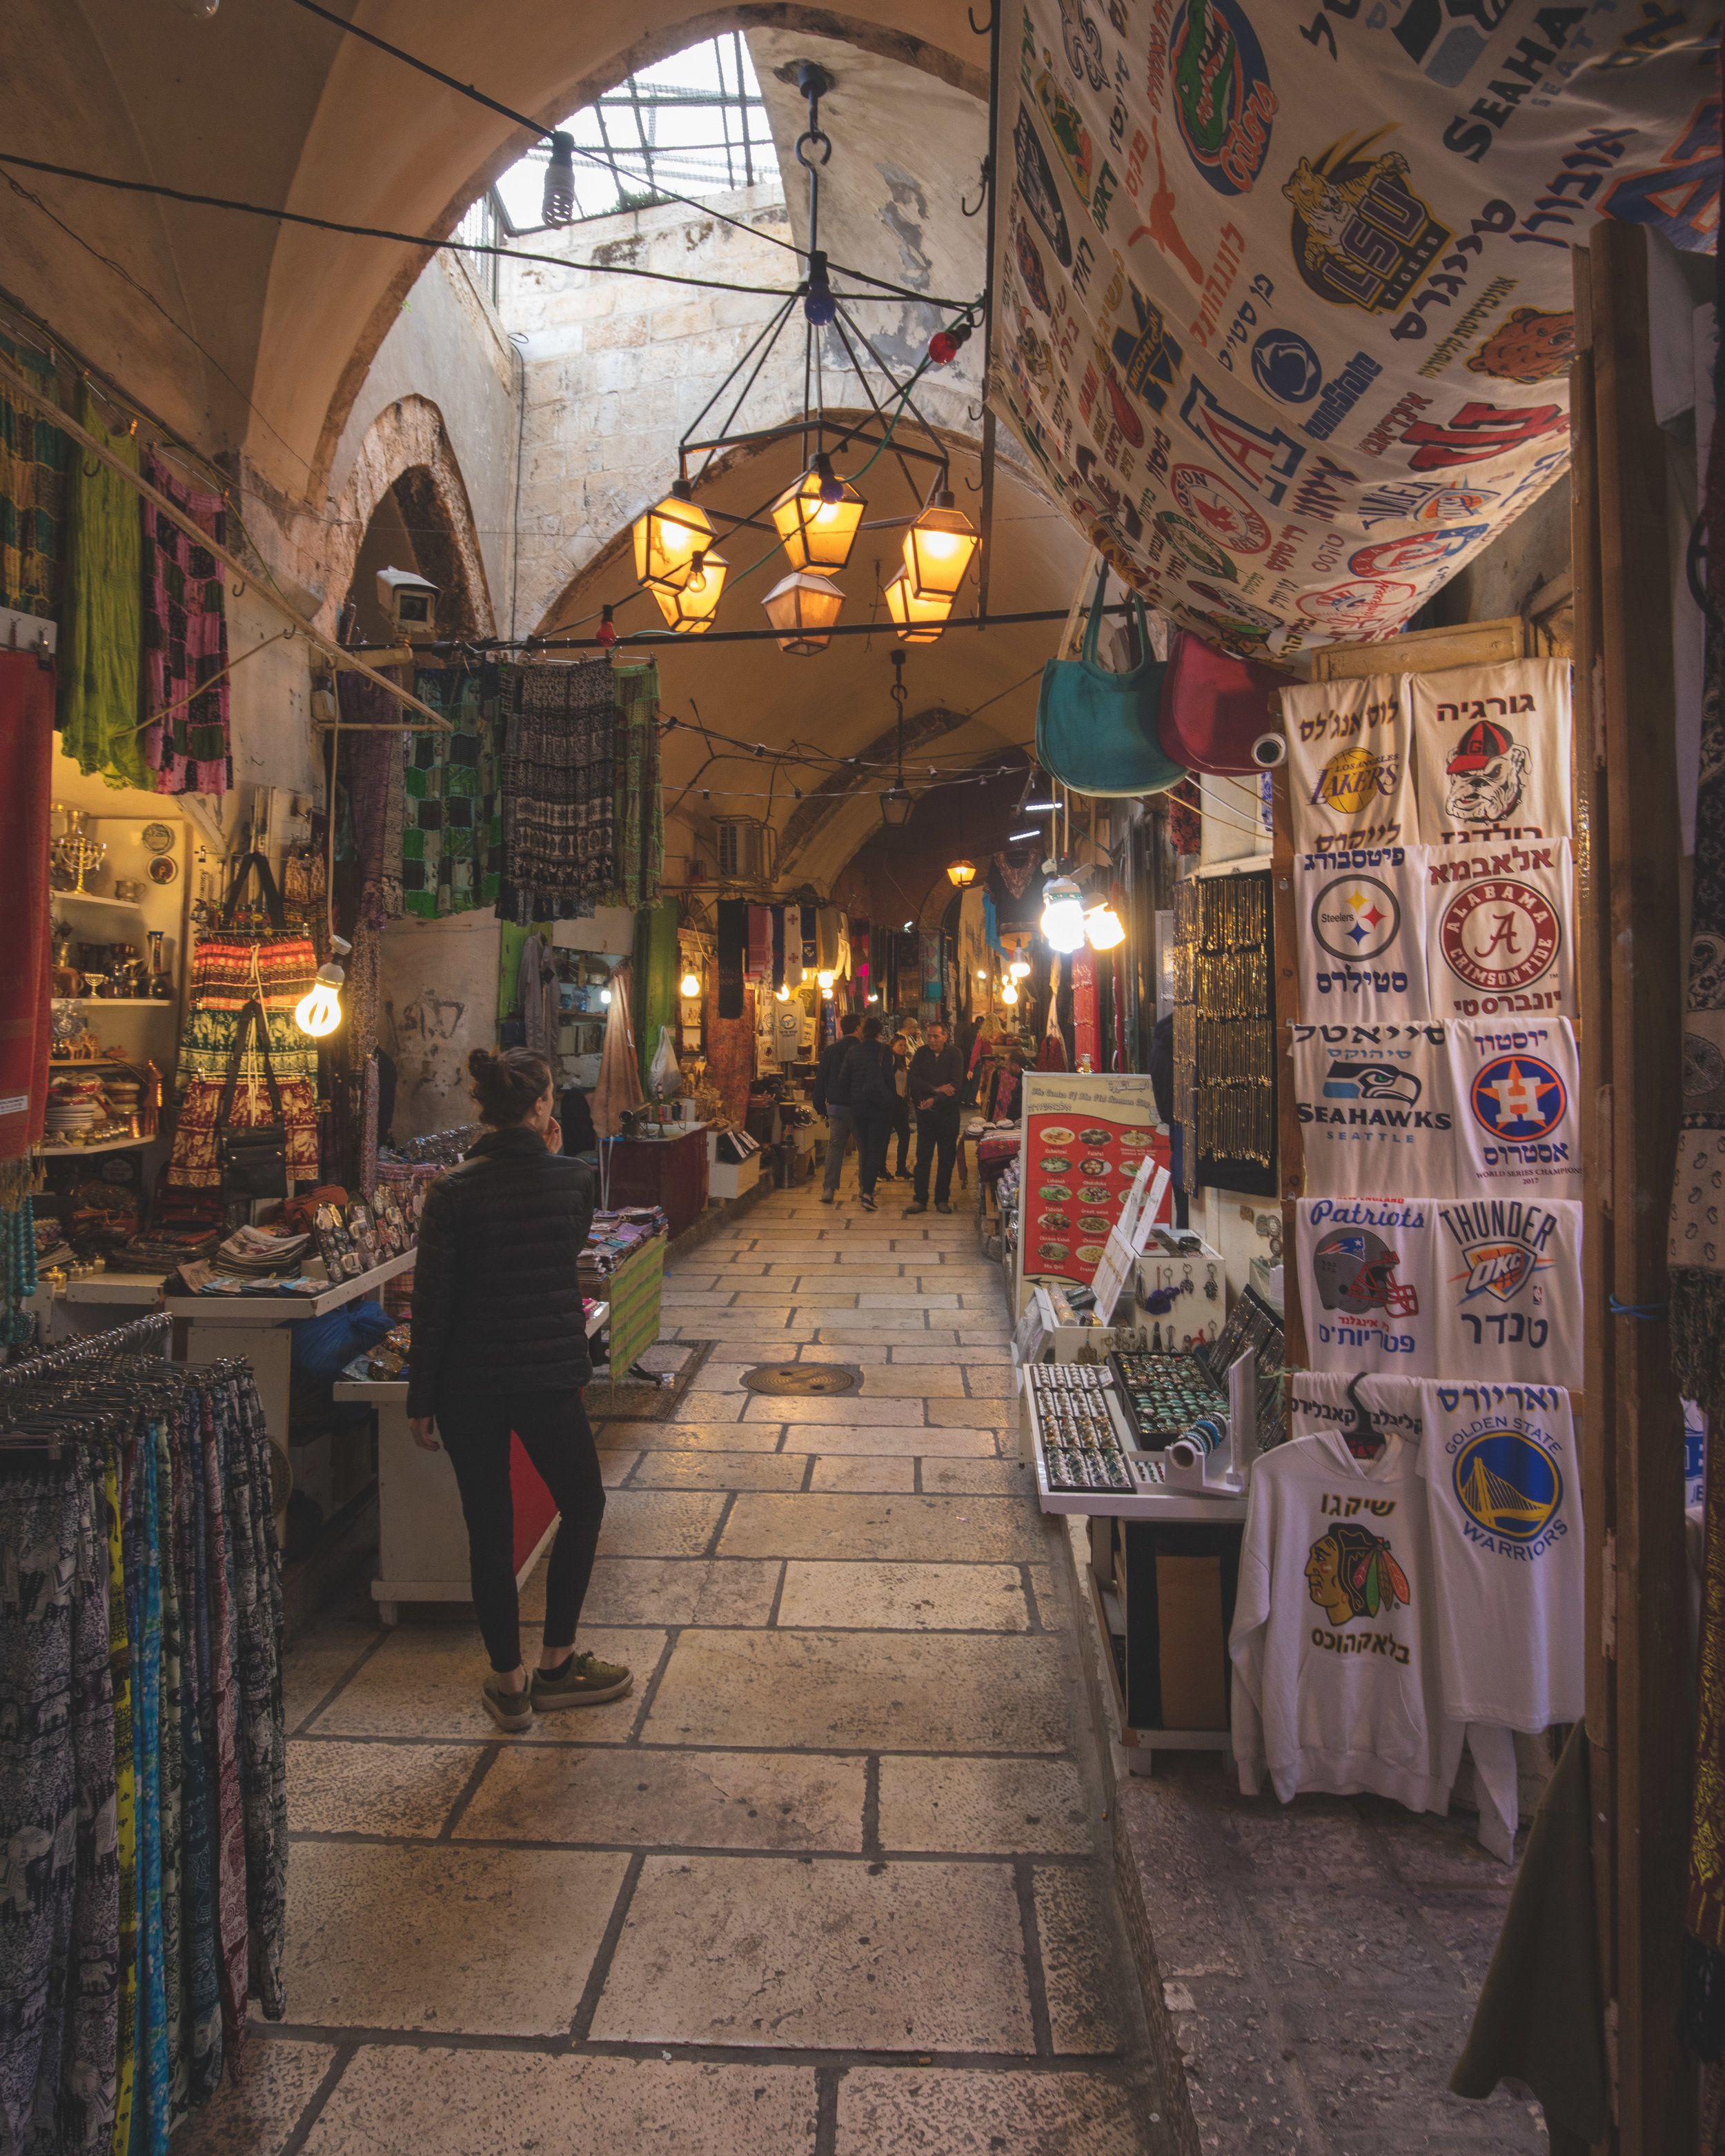 The streets of the Old City